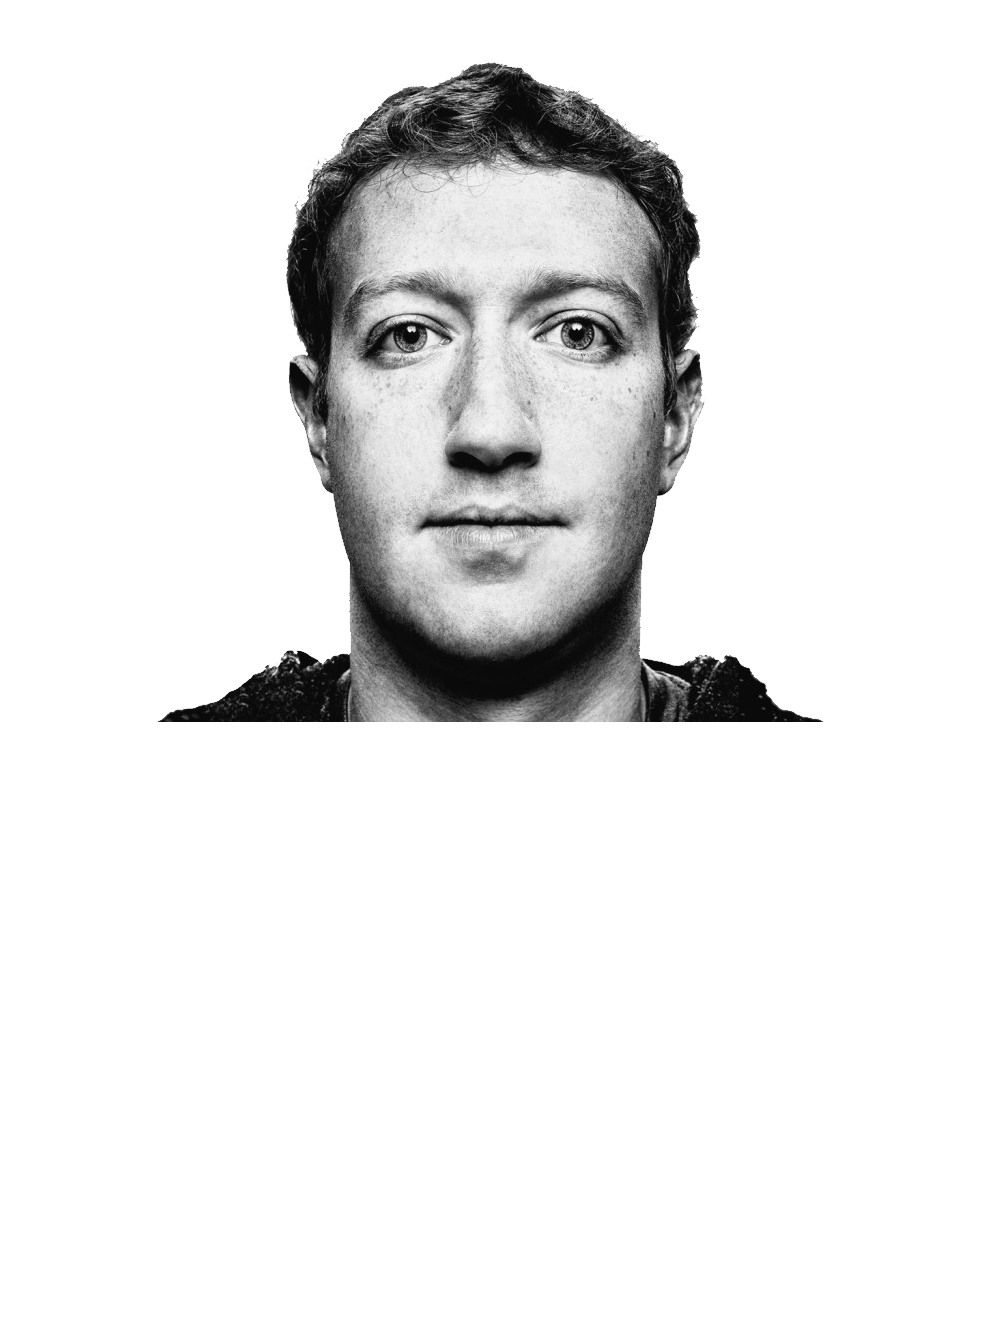 Zuckerberg Platon United Photography Mark States London PNG Image